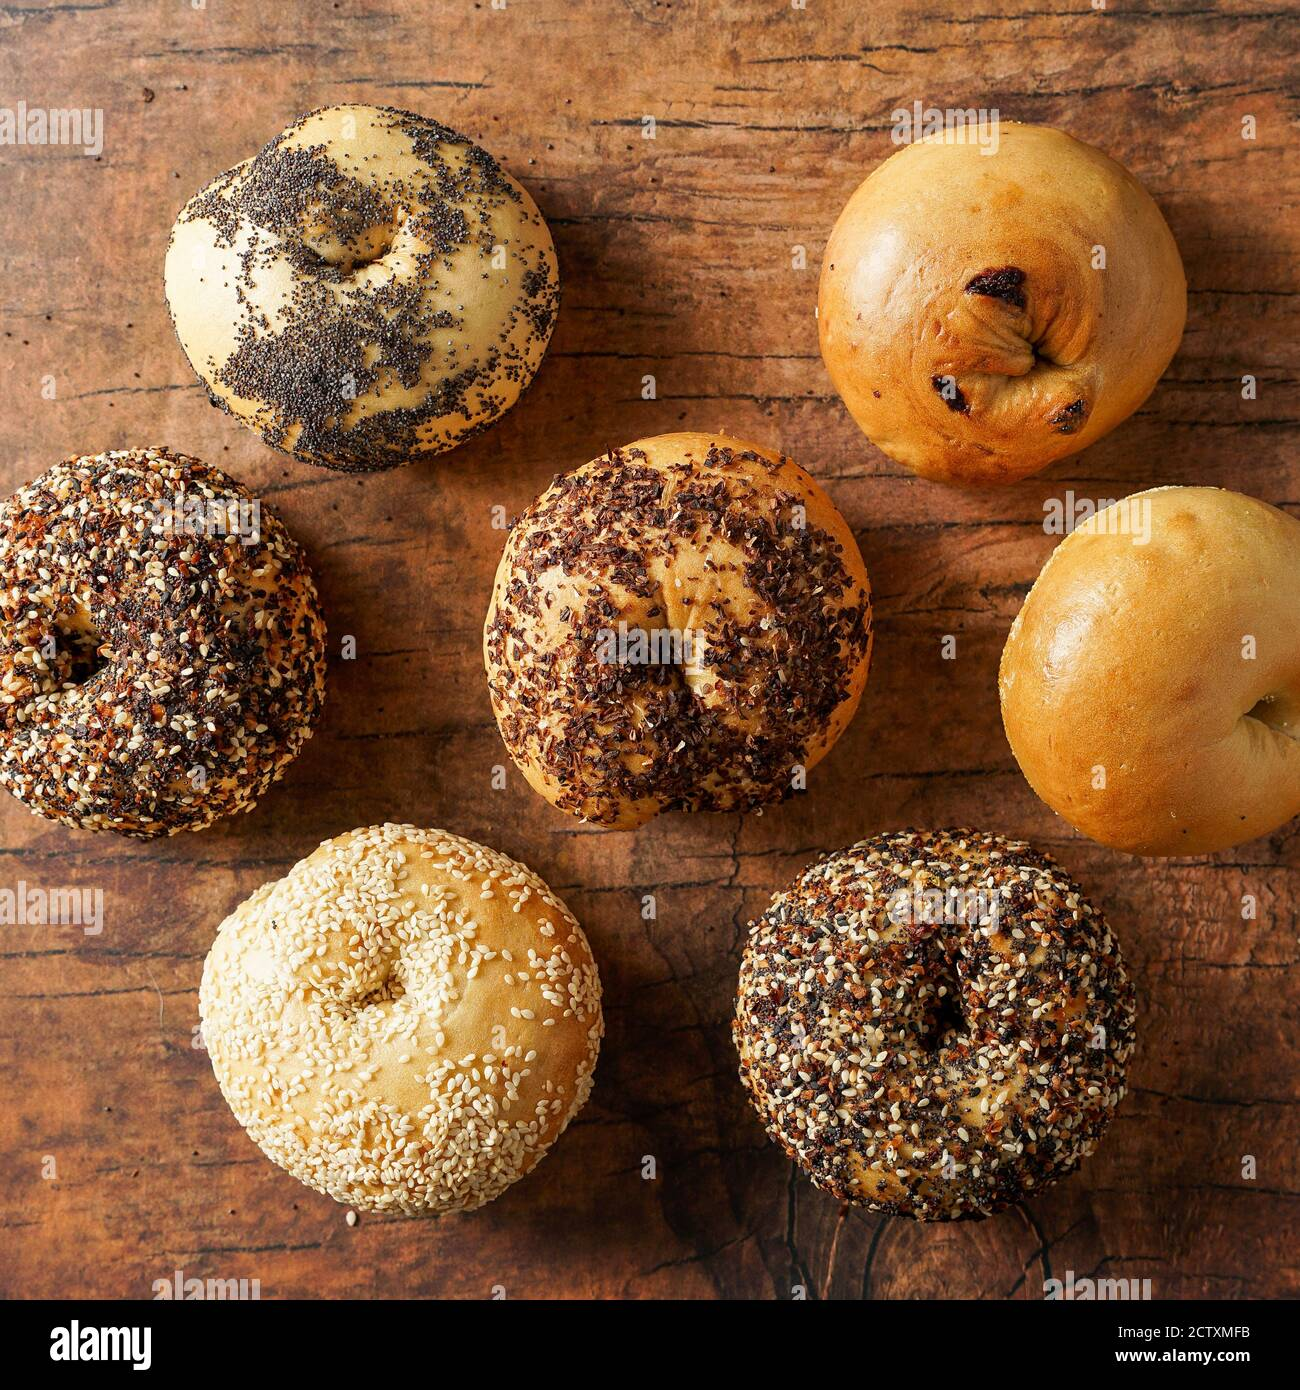 Fresh Sourdough Bagels on a wooden surface Stock Photo